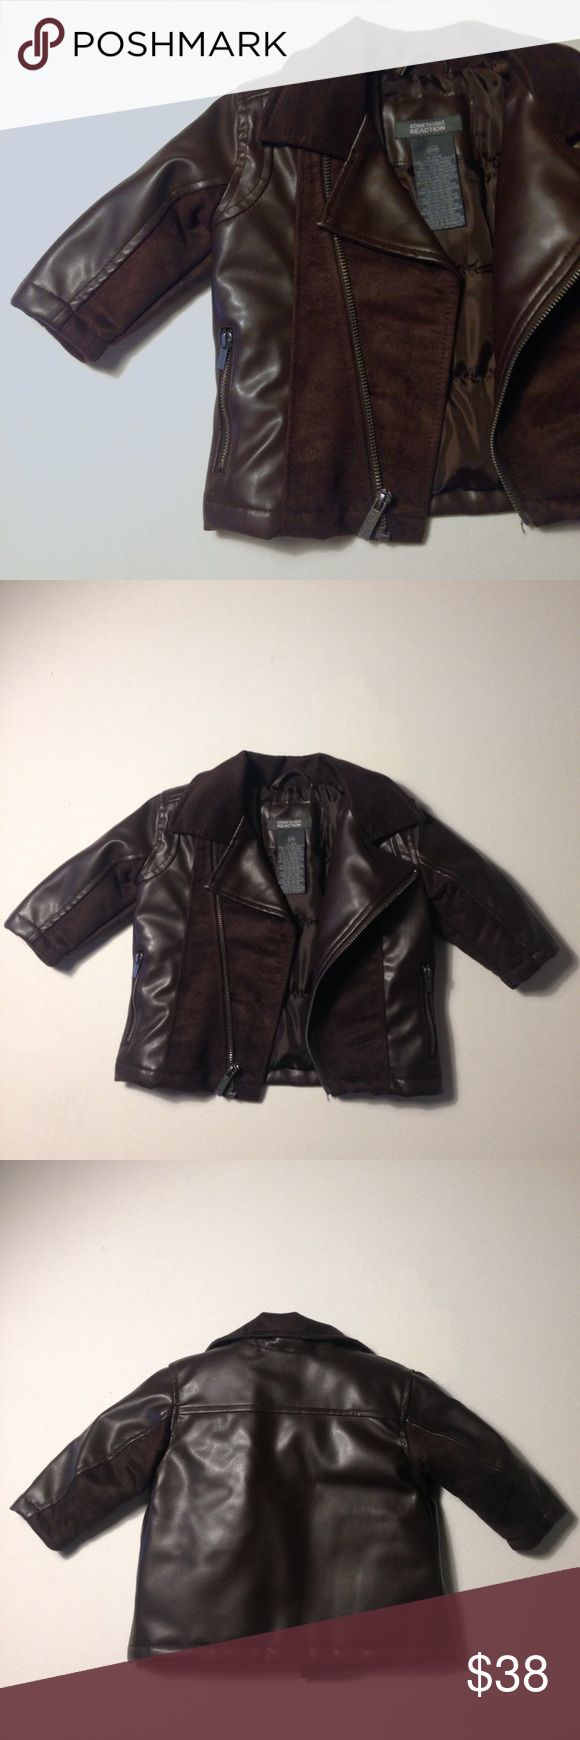 NWOT Kenneth Cole Reaction Brown Leather Jacket NWOT Kenneth Cole Reaction Brown Leather Suede Jacket. Baby Boy Leather Jacket Coat. Suede detailing, Zipper Front Closure, 2 Side Pockets. NWOT - New without Tags, Tags Removed, Excellent Condition - No Flaws No Fading. ✨Please keep in mind that measurements are provided only as a guide and are approximate. Color appearance may vary depending on your monitor settings. Retail $100.00 Kenneth Cole Reaction Jackets & Coats